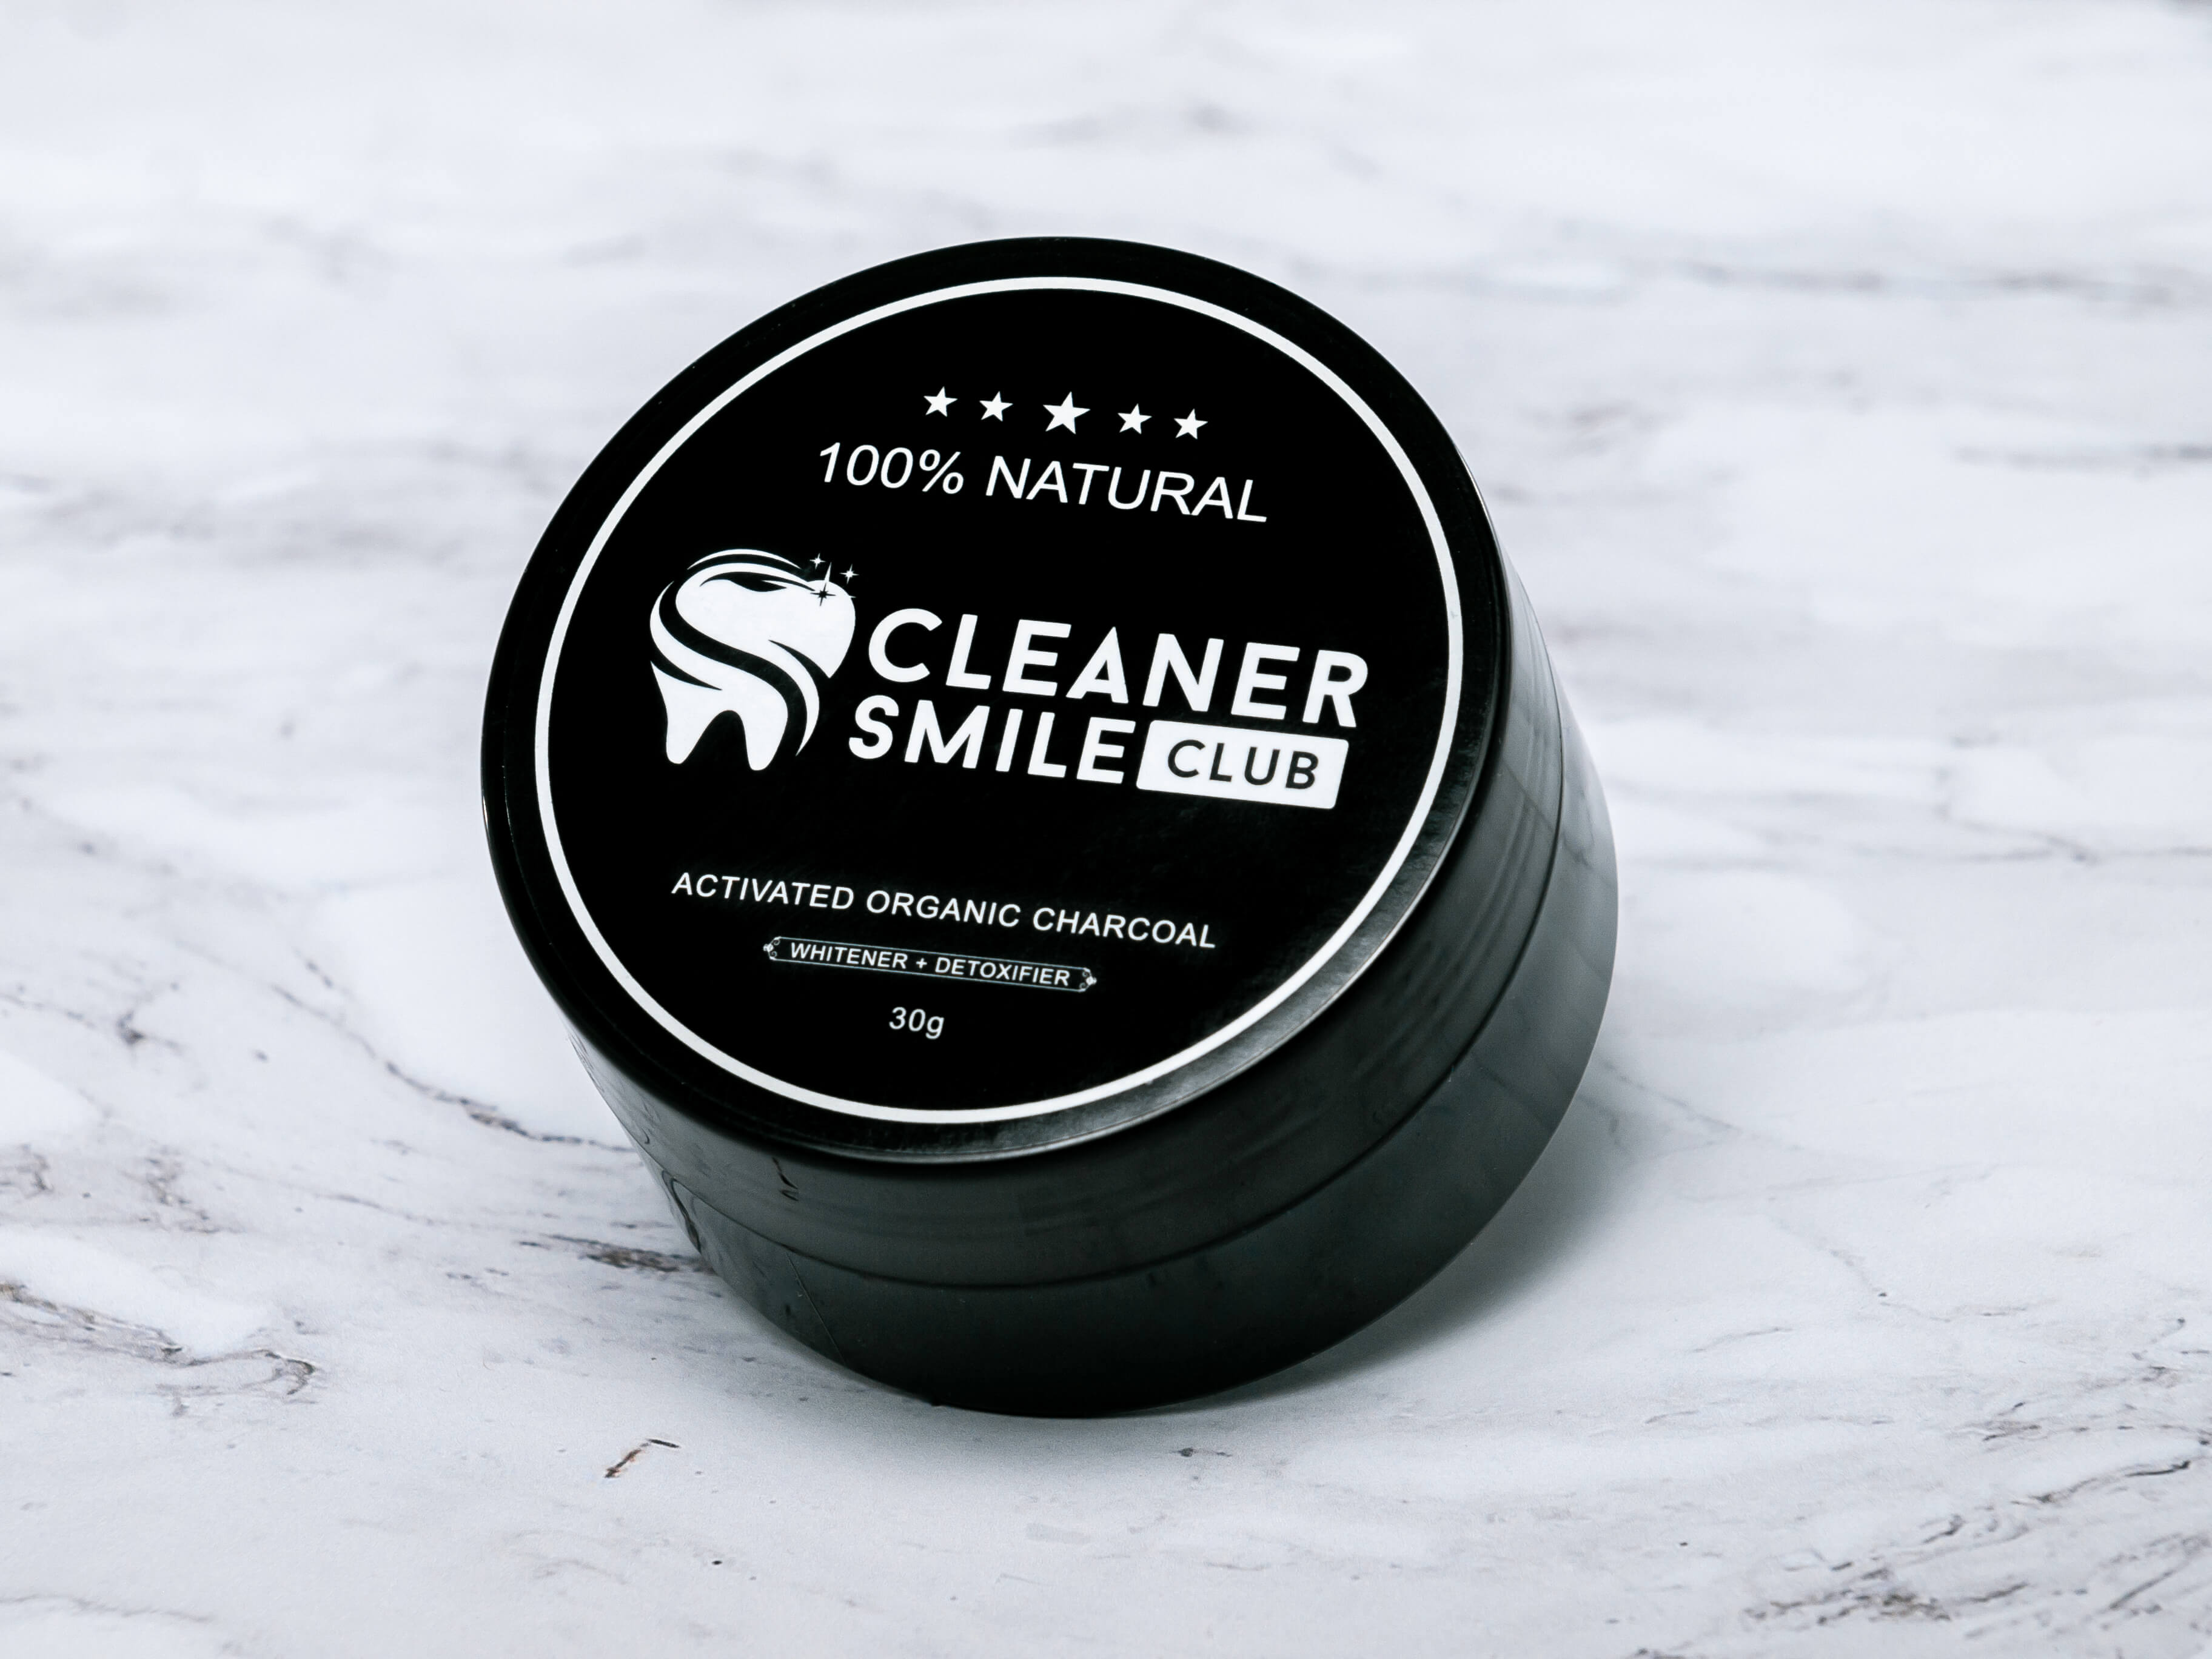 Best way to whiten teeth use charcoal powder black bottle from black kit of Cosmetic Brand Cleaner Smile Club, this bottle located on the marble background professional commercial photo made by Fantastic Imago Branding, Advertising and Consulting Agency